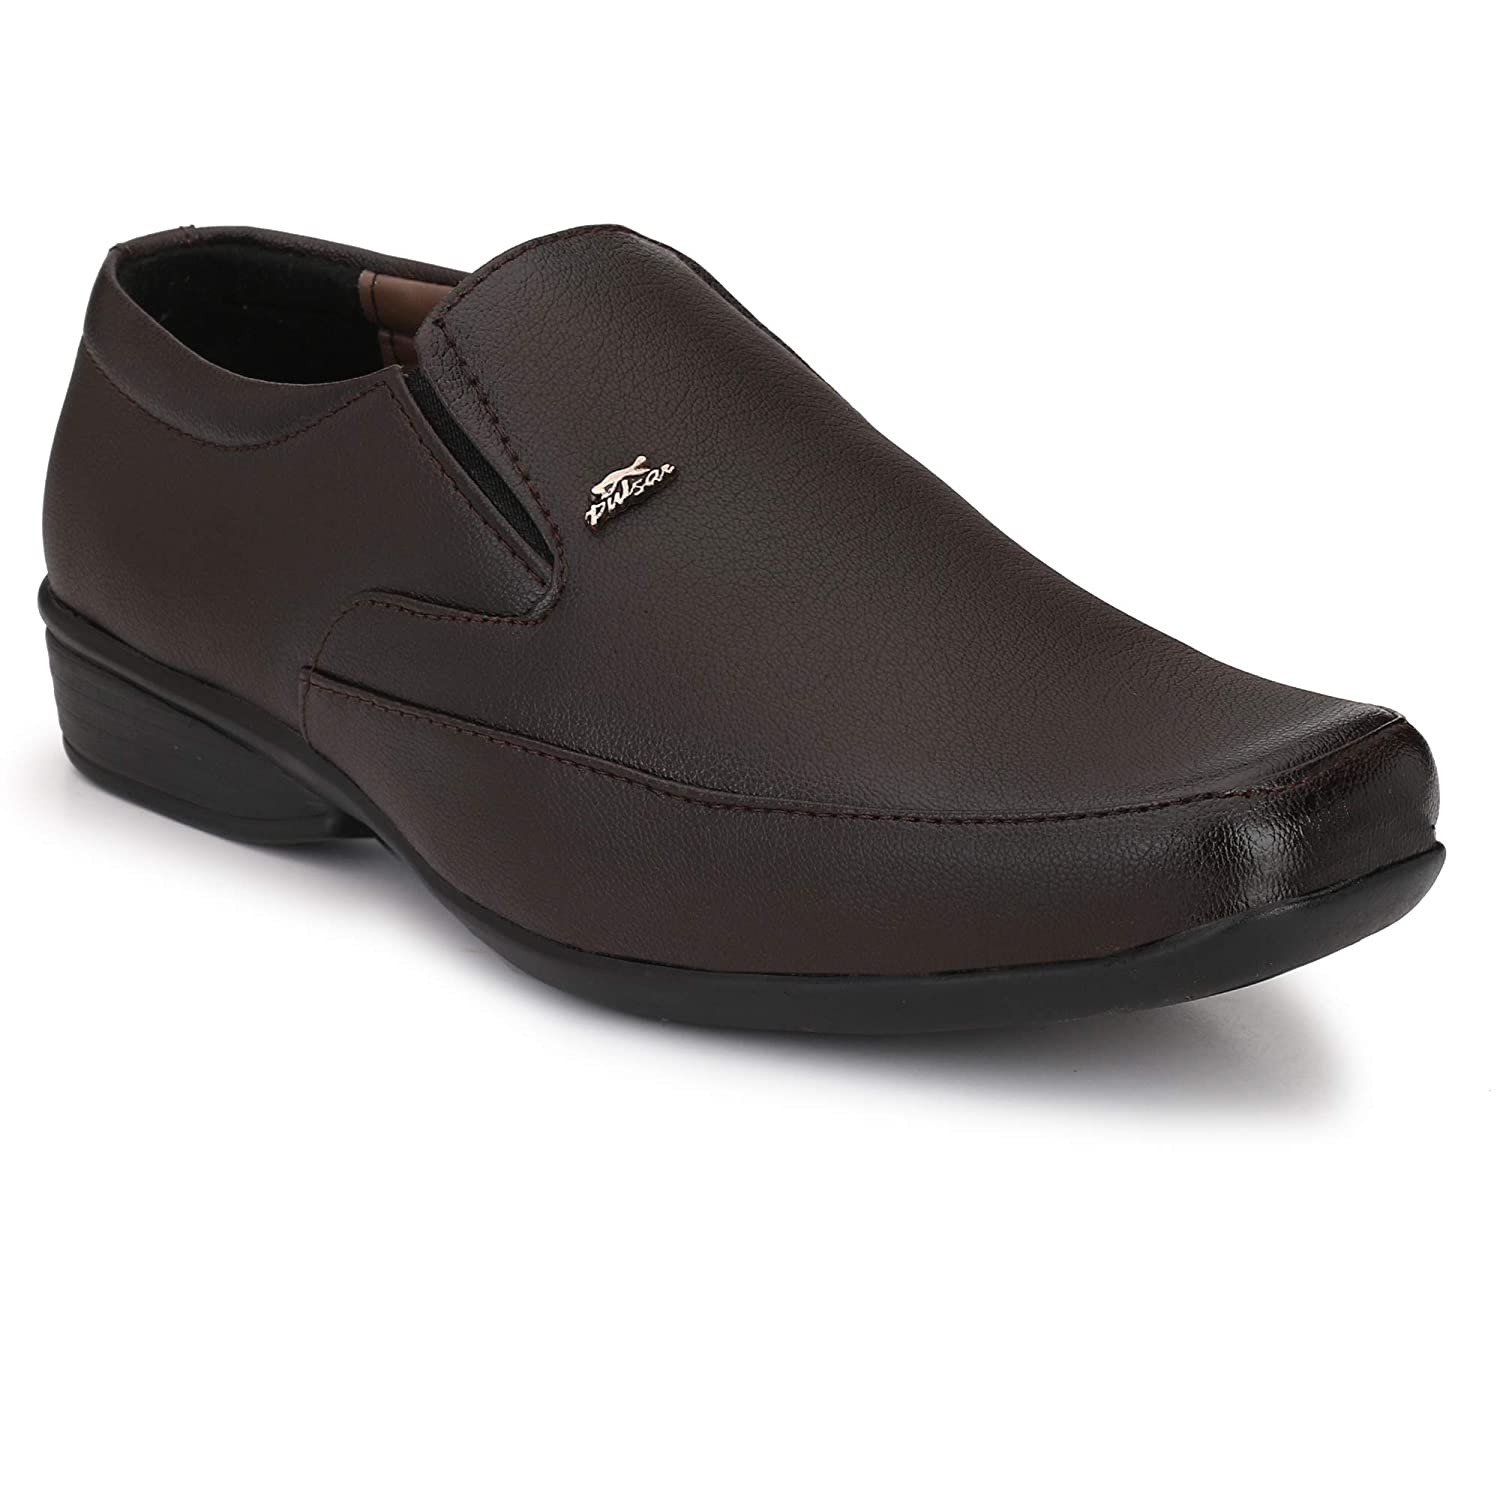 54faa01b227 Stylelure Synthetic Leather Formal Shoes for Men/Best for Office